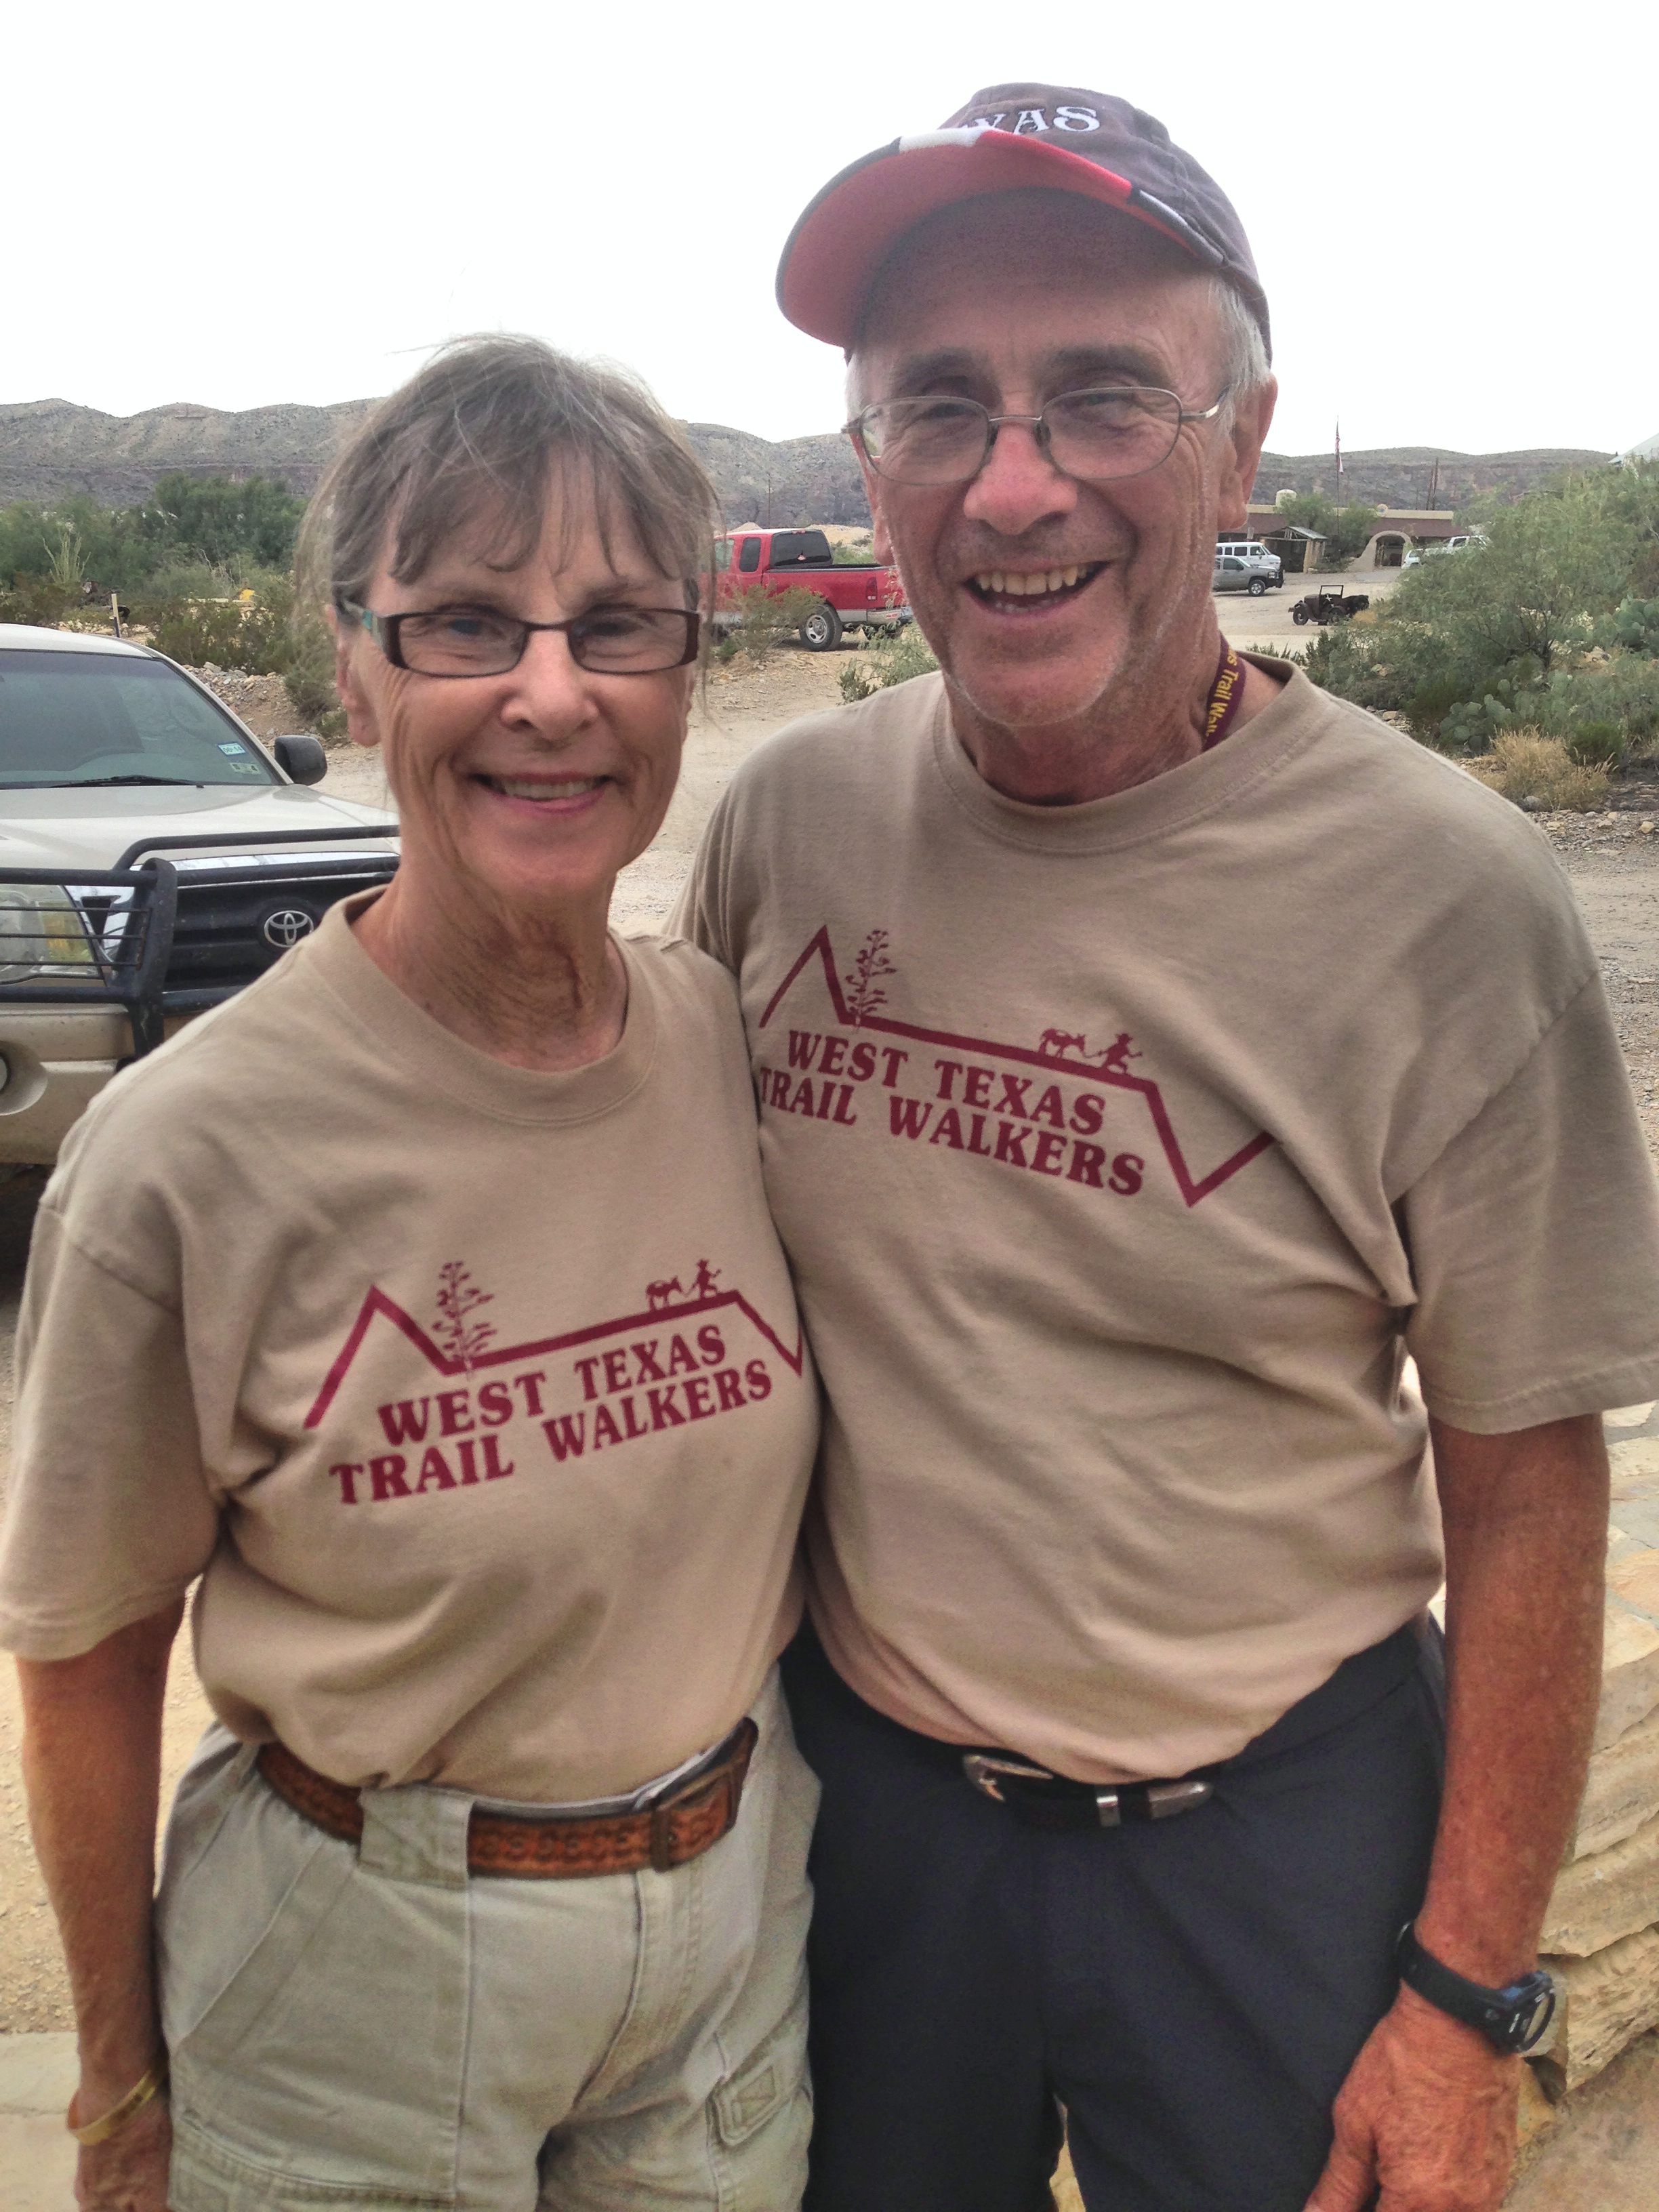 West Texas Trail Walkers - Kathie & Les Minear of Ft. Worth, Texas